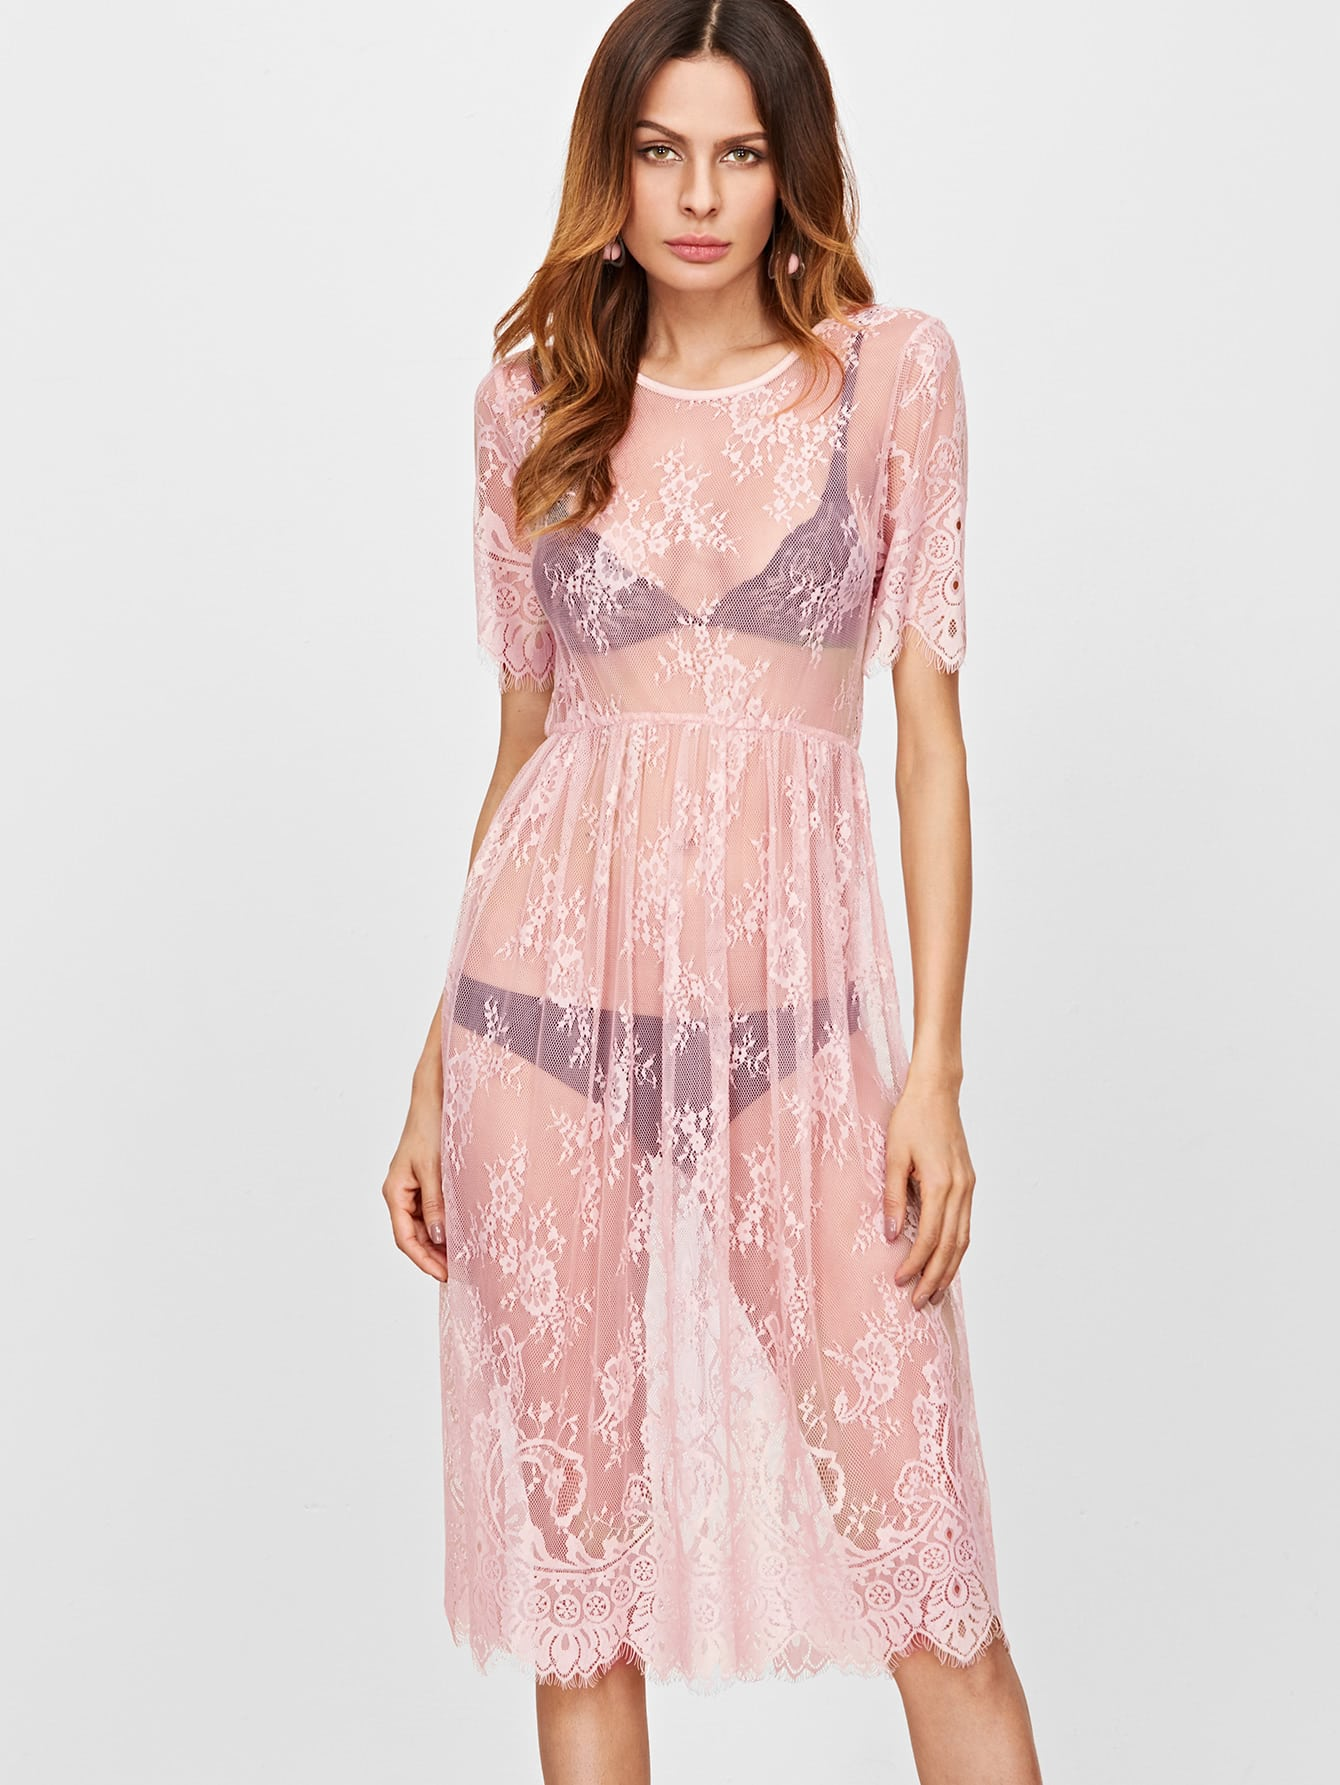 Pink Split Back Sheer Floral Lace Dress